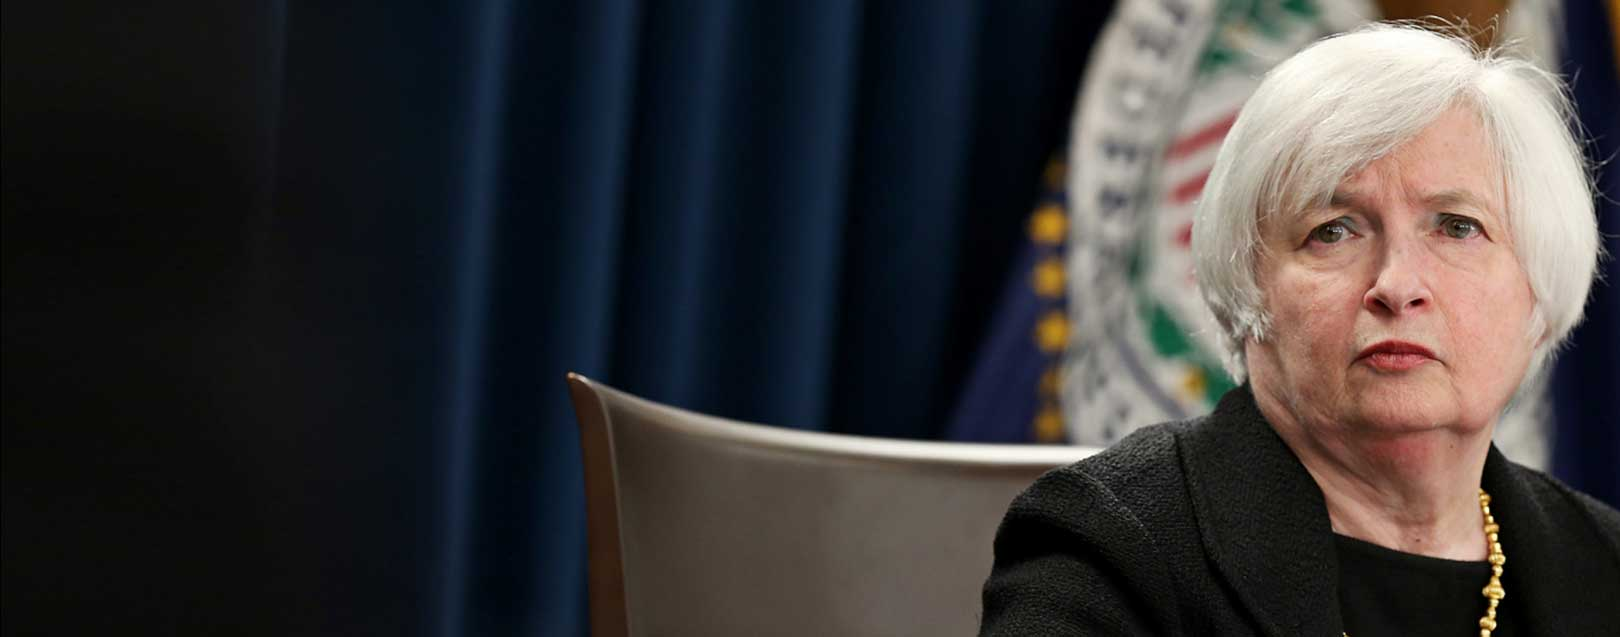 Yellen hints at fed rate hike in March